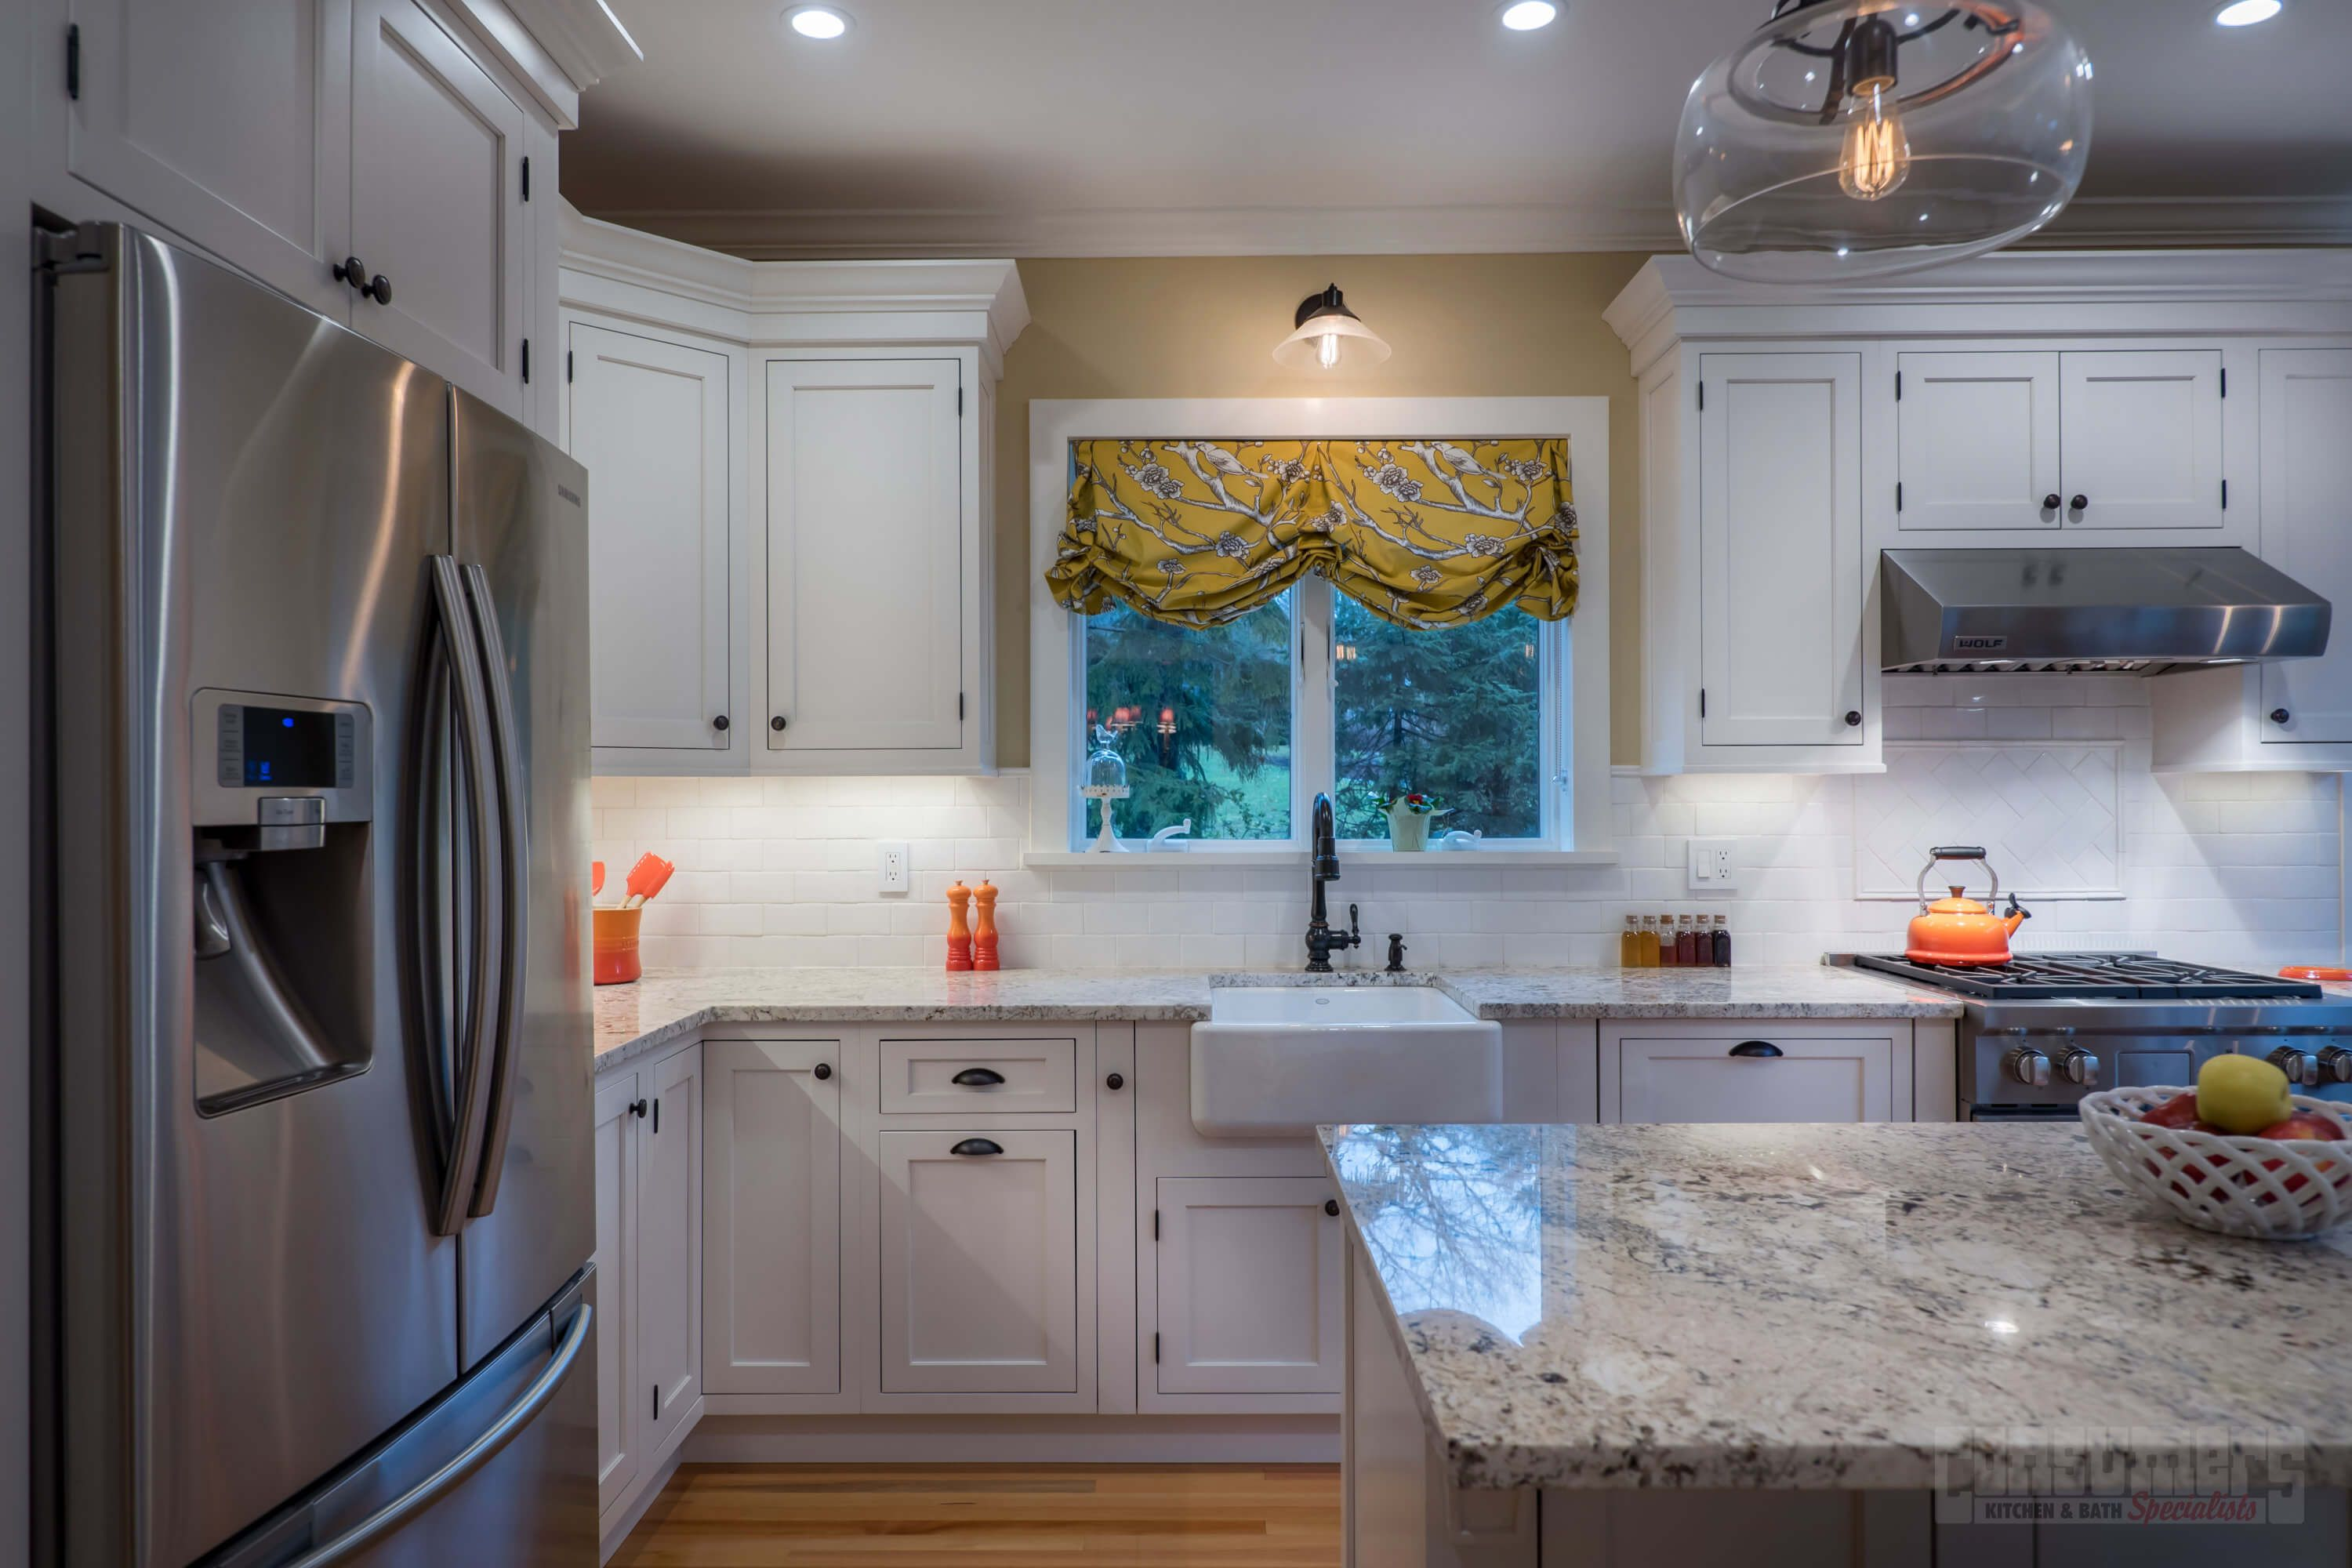 Pin By Consumers Kitchens Baths On Stylish In Huntington